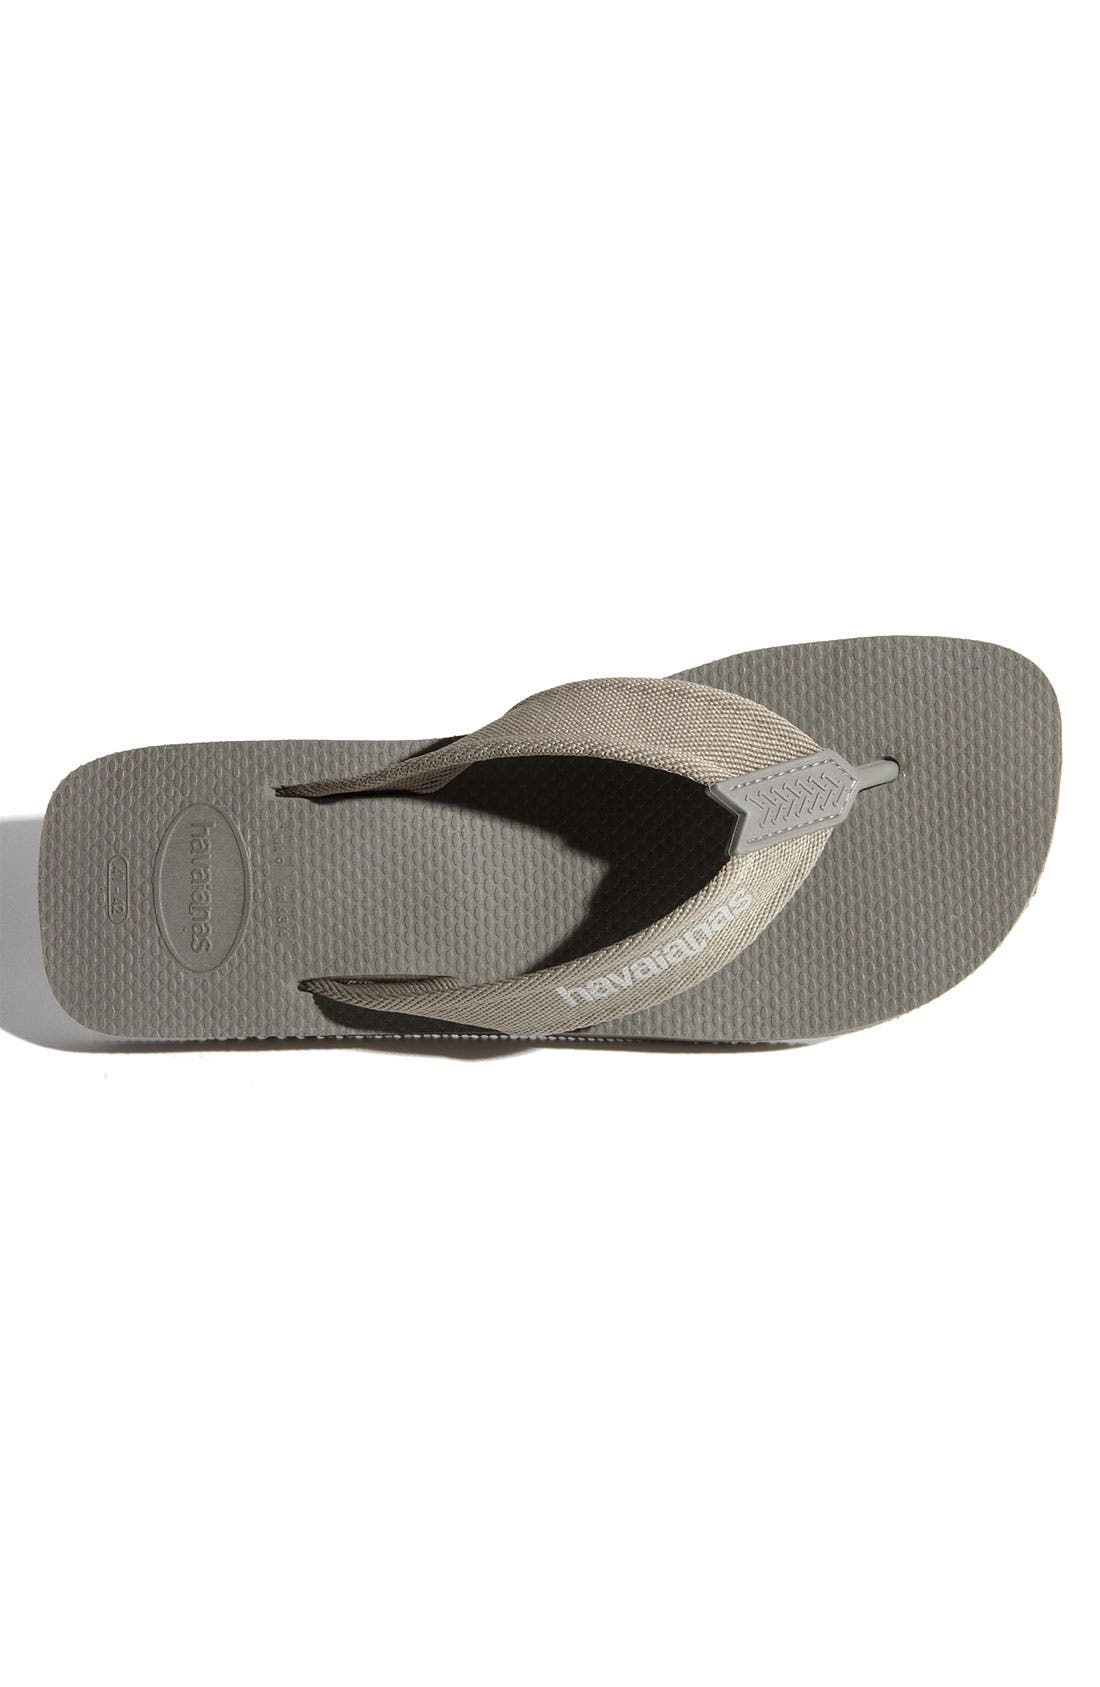 Alternate Image 3  - Havaianas 'Urban' Flip Flop (Men)